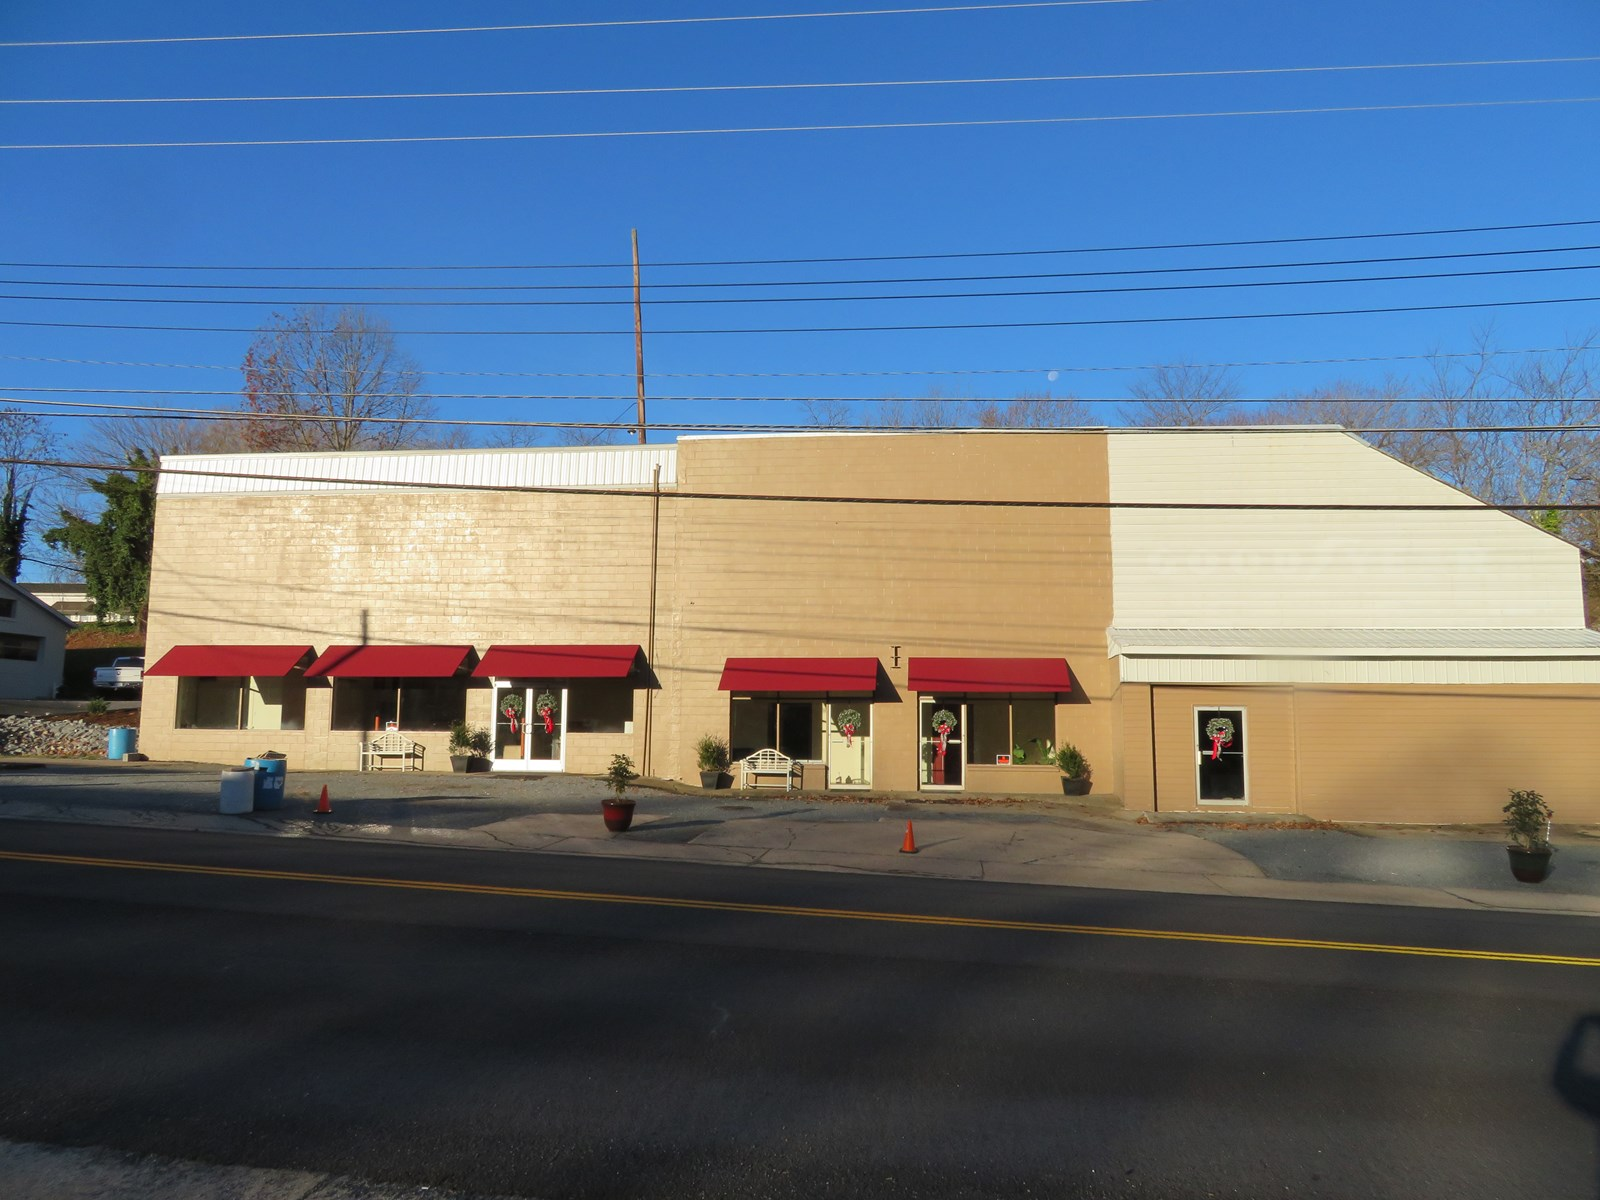 Commercial/ Business Building in the heart of Gretna, VA